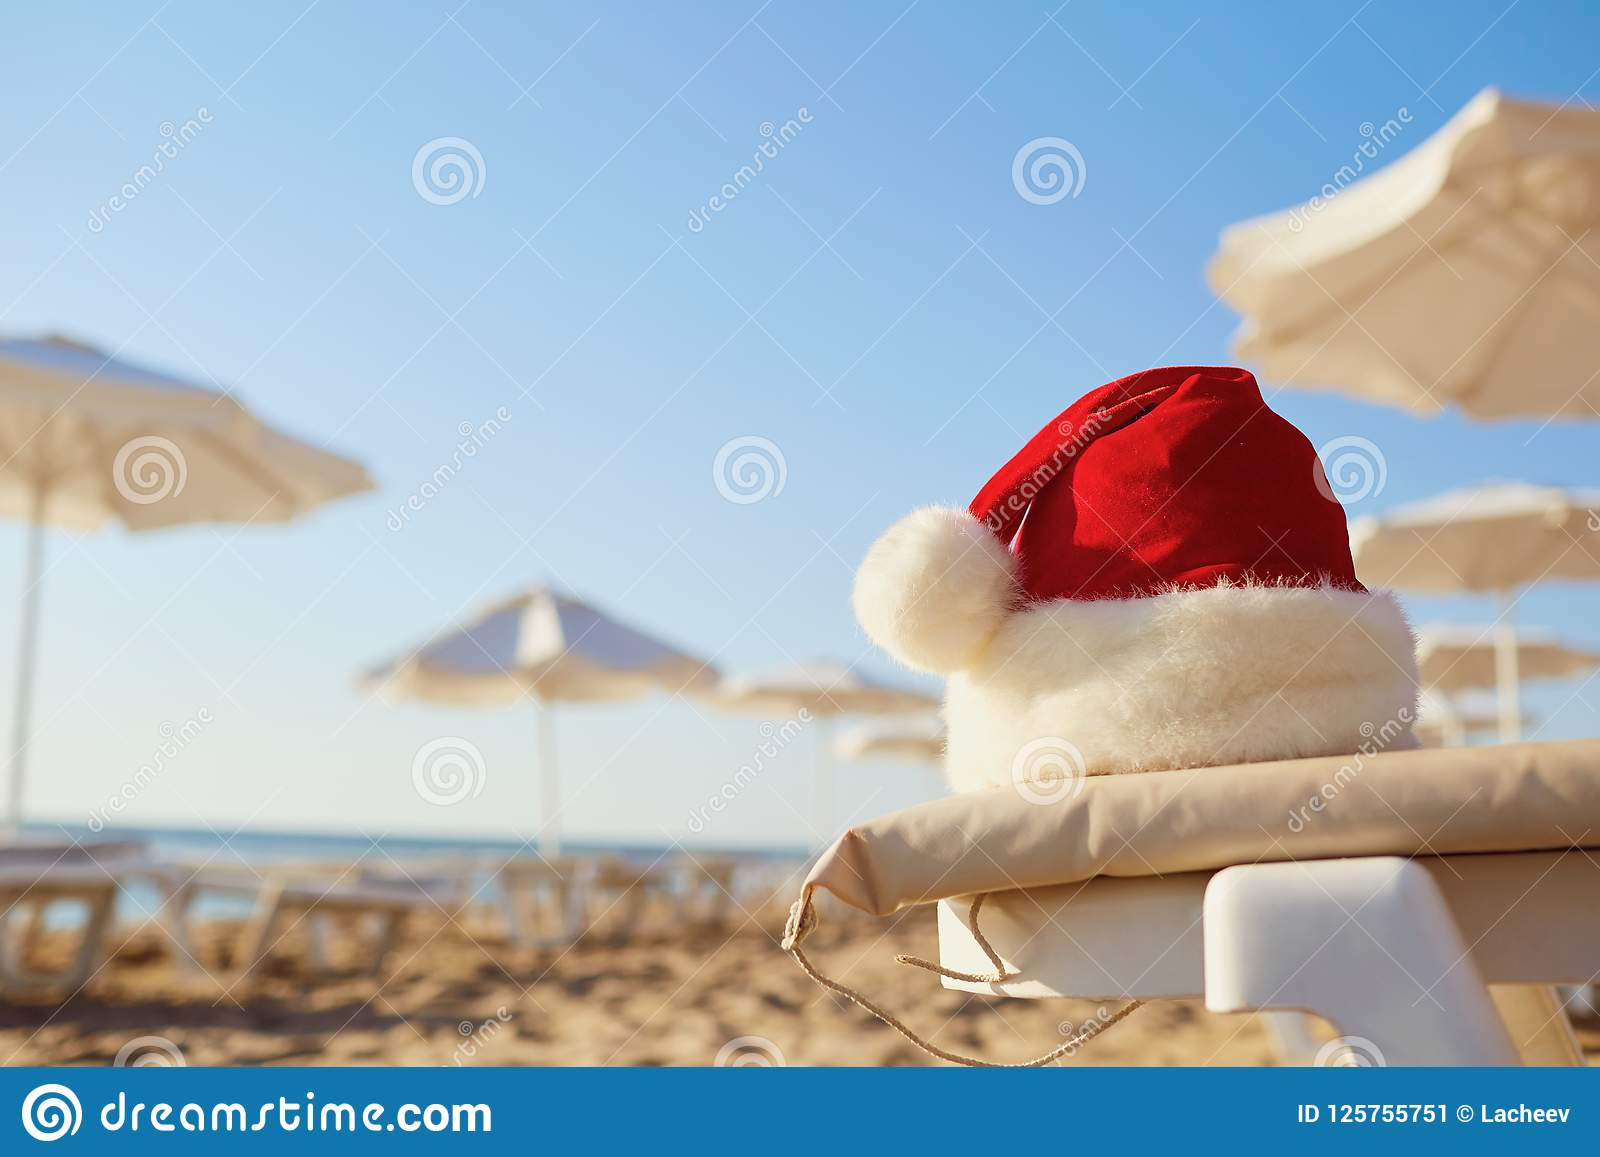 santa claus hat on the beach on christmas day - Beach Christmas Pictures